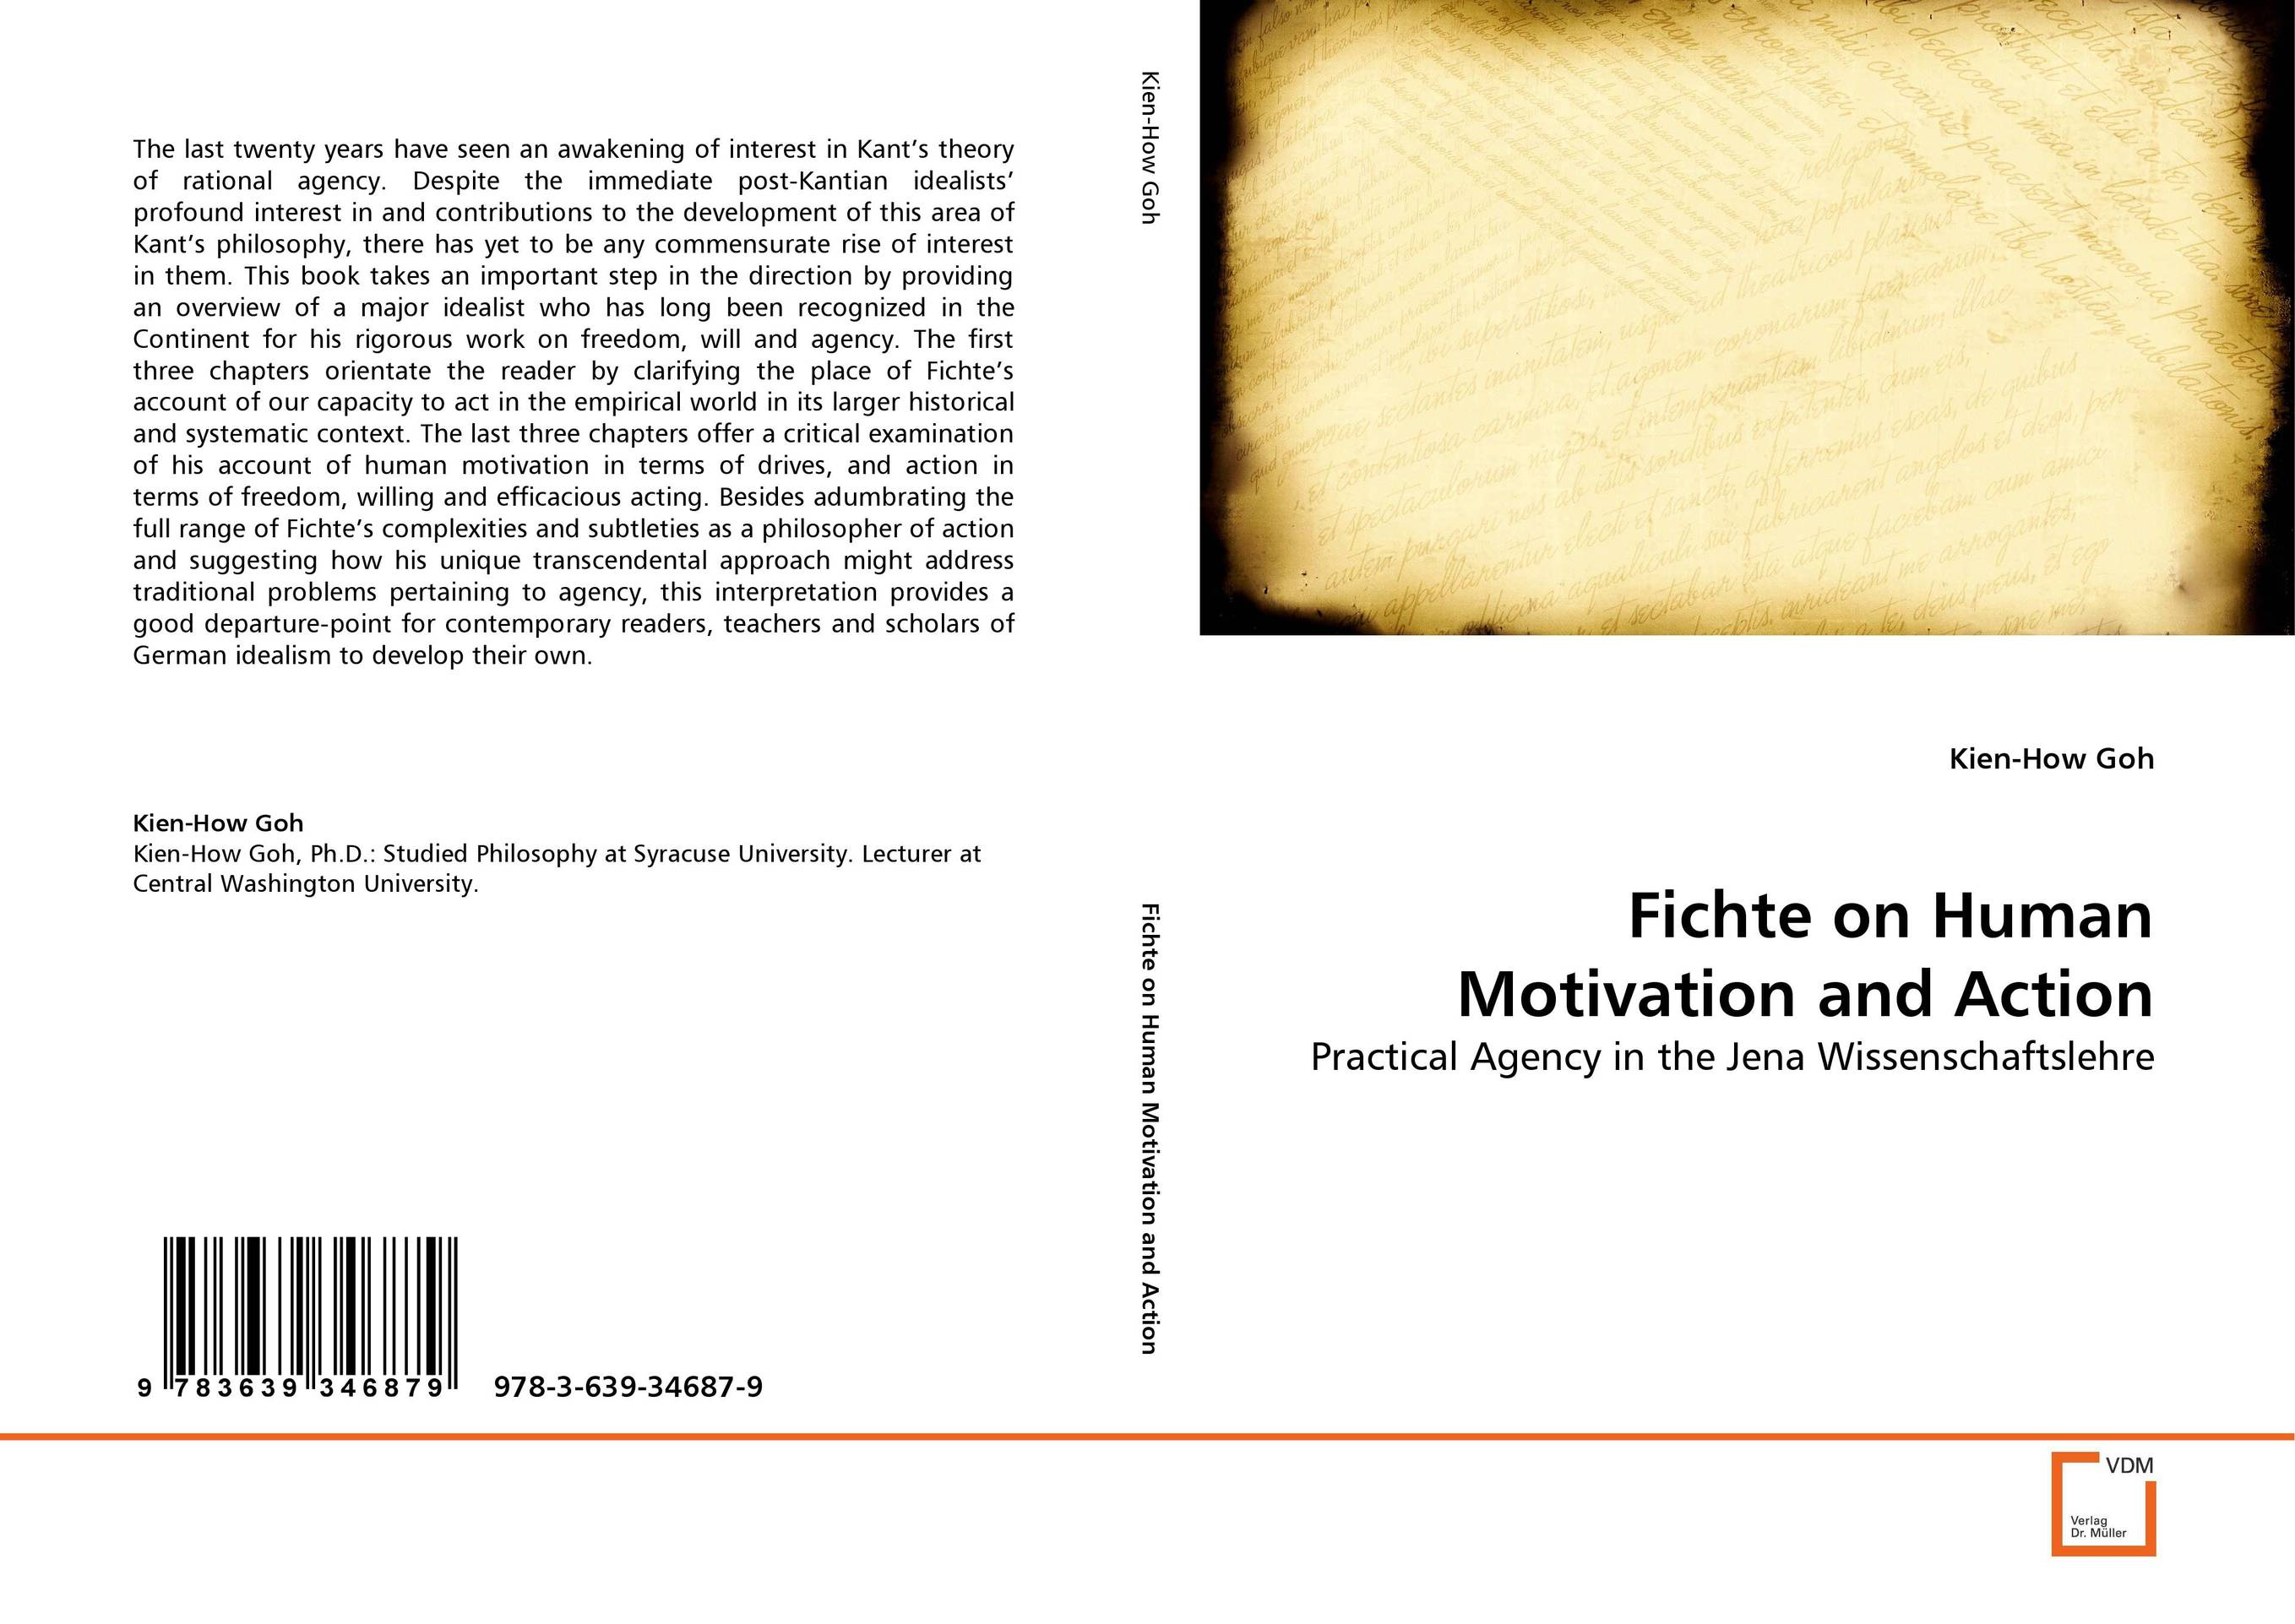 Fichte on Human Motivation and Action